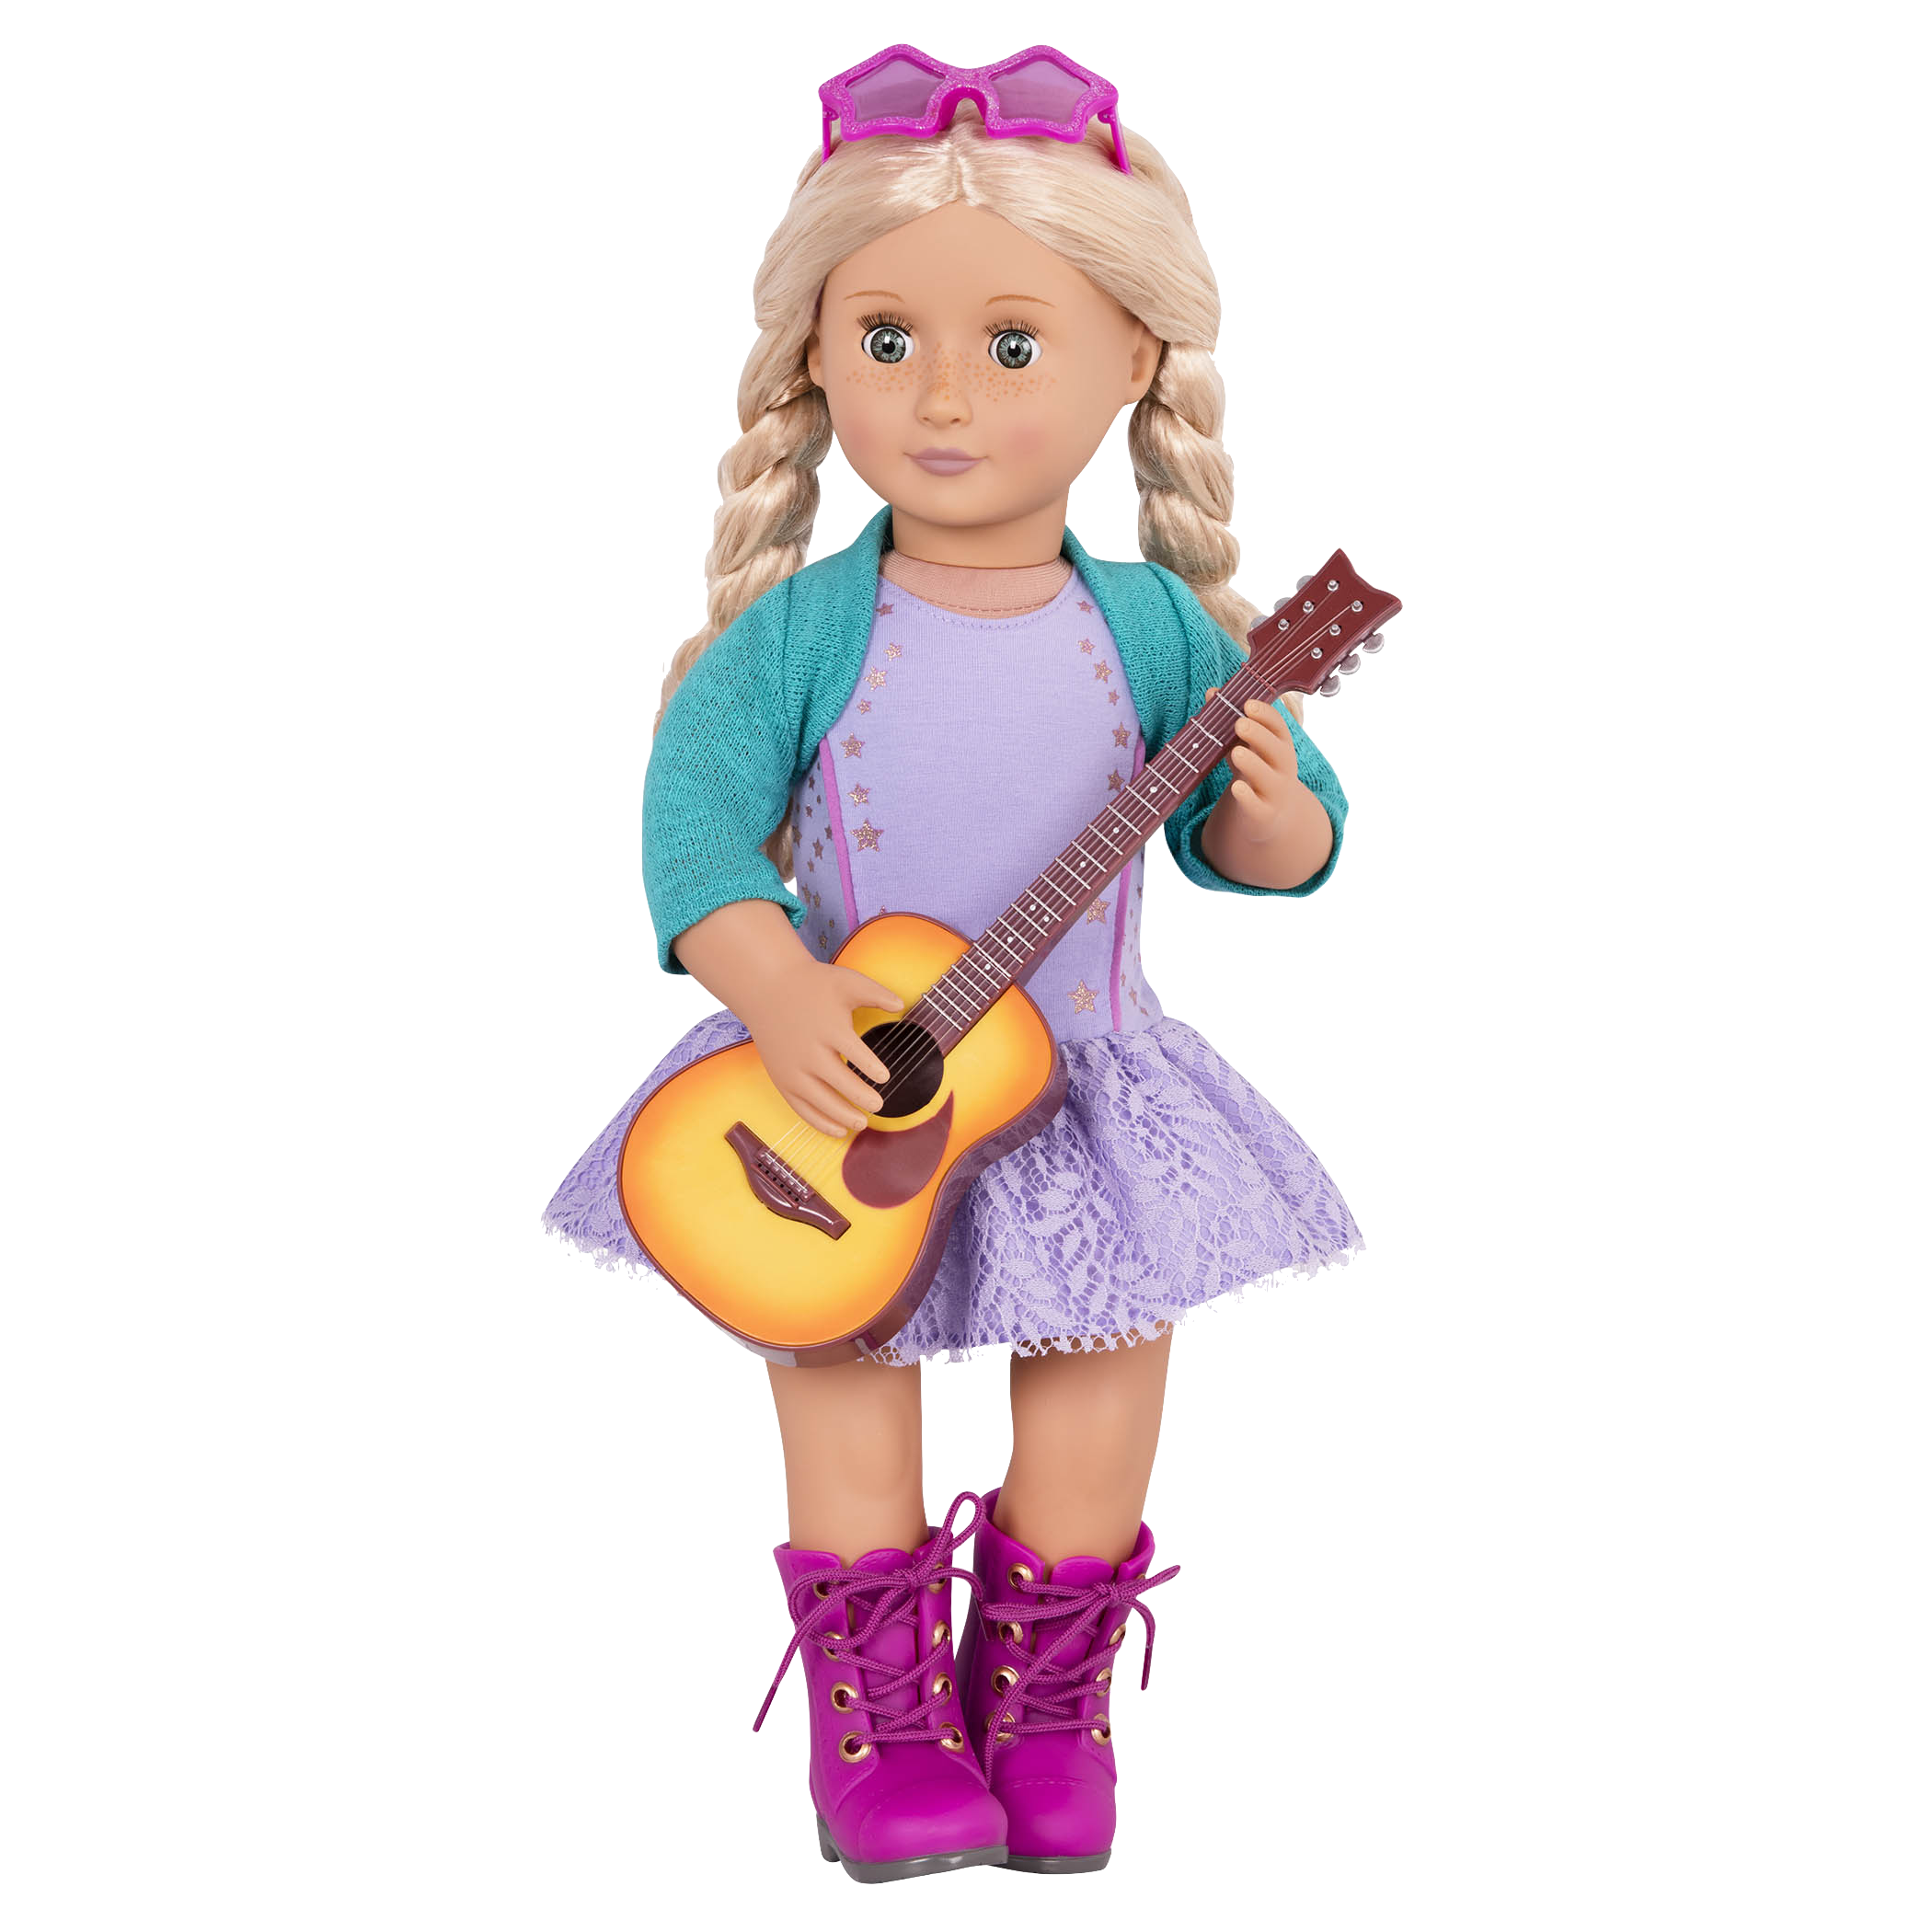 Coral holding guitar and wearing dress